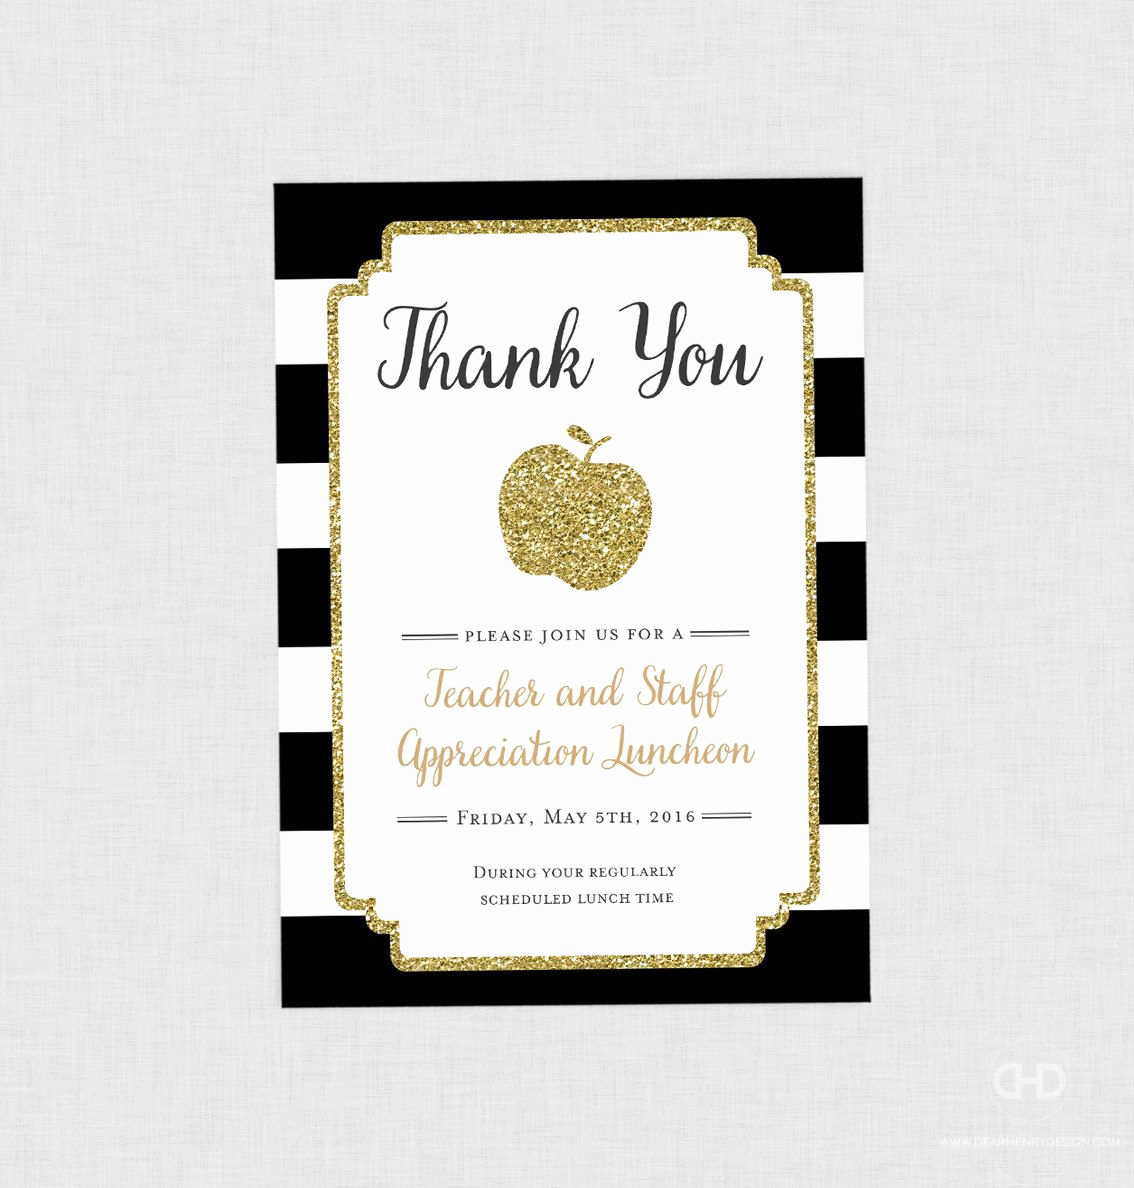 Teacher Appreciation Luncheon Invitation New Pin by Leah Fields On Teacher Appreciation